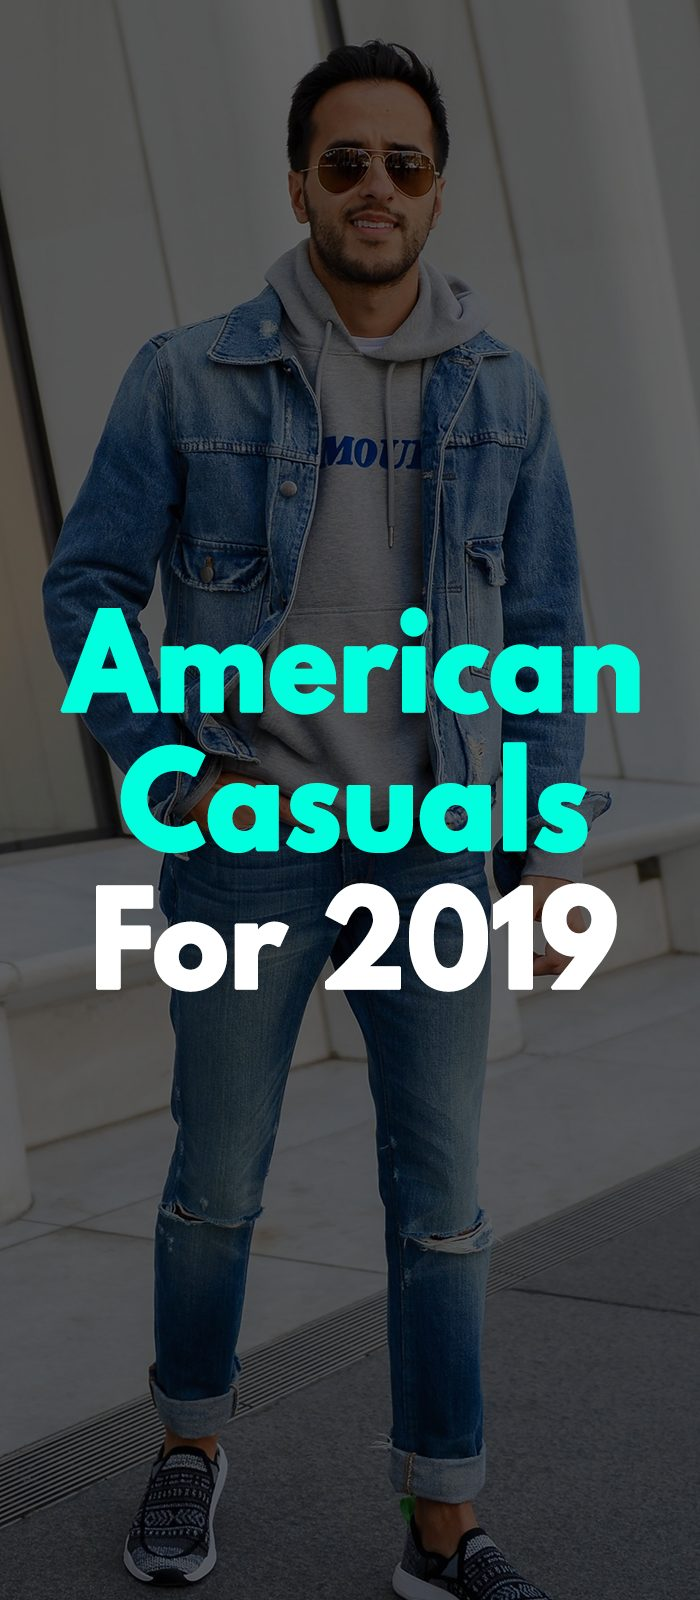 American Casuals For 2019